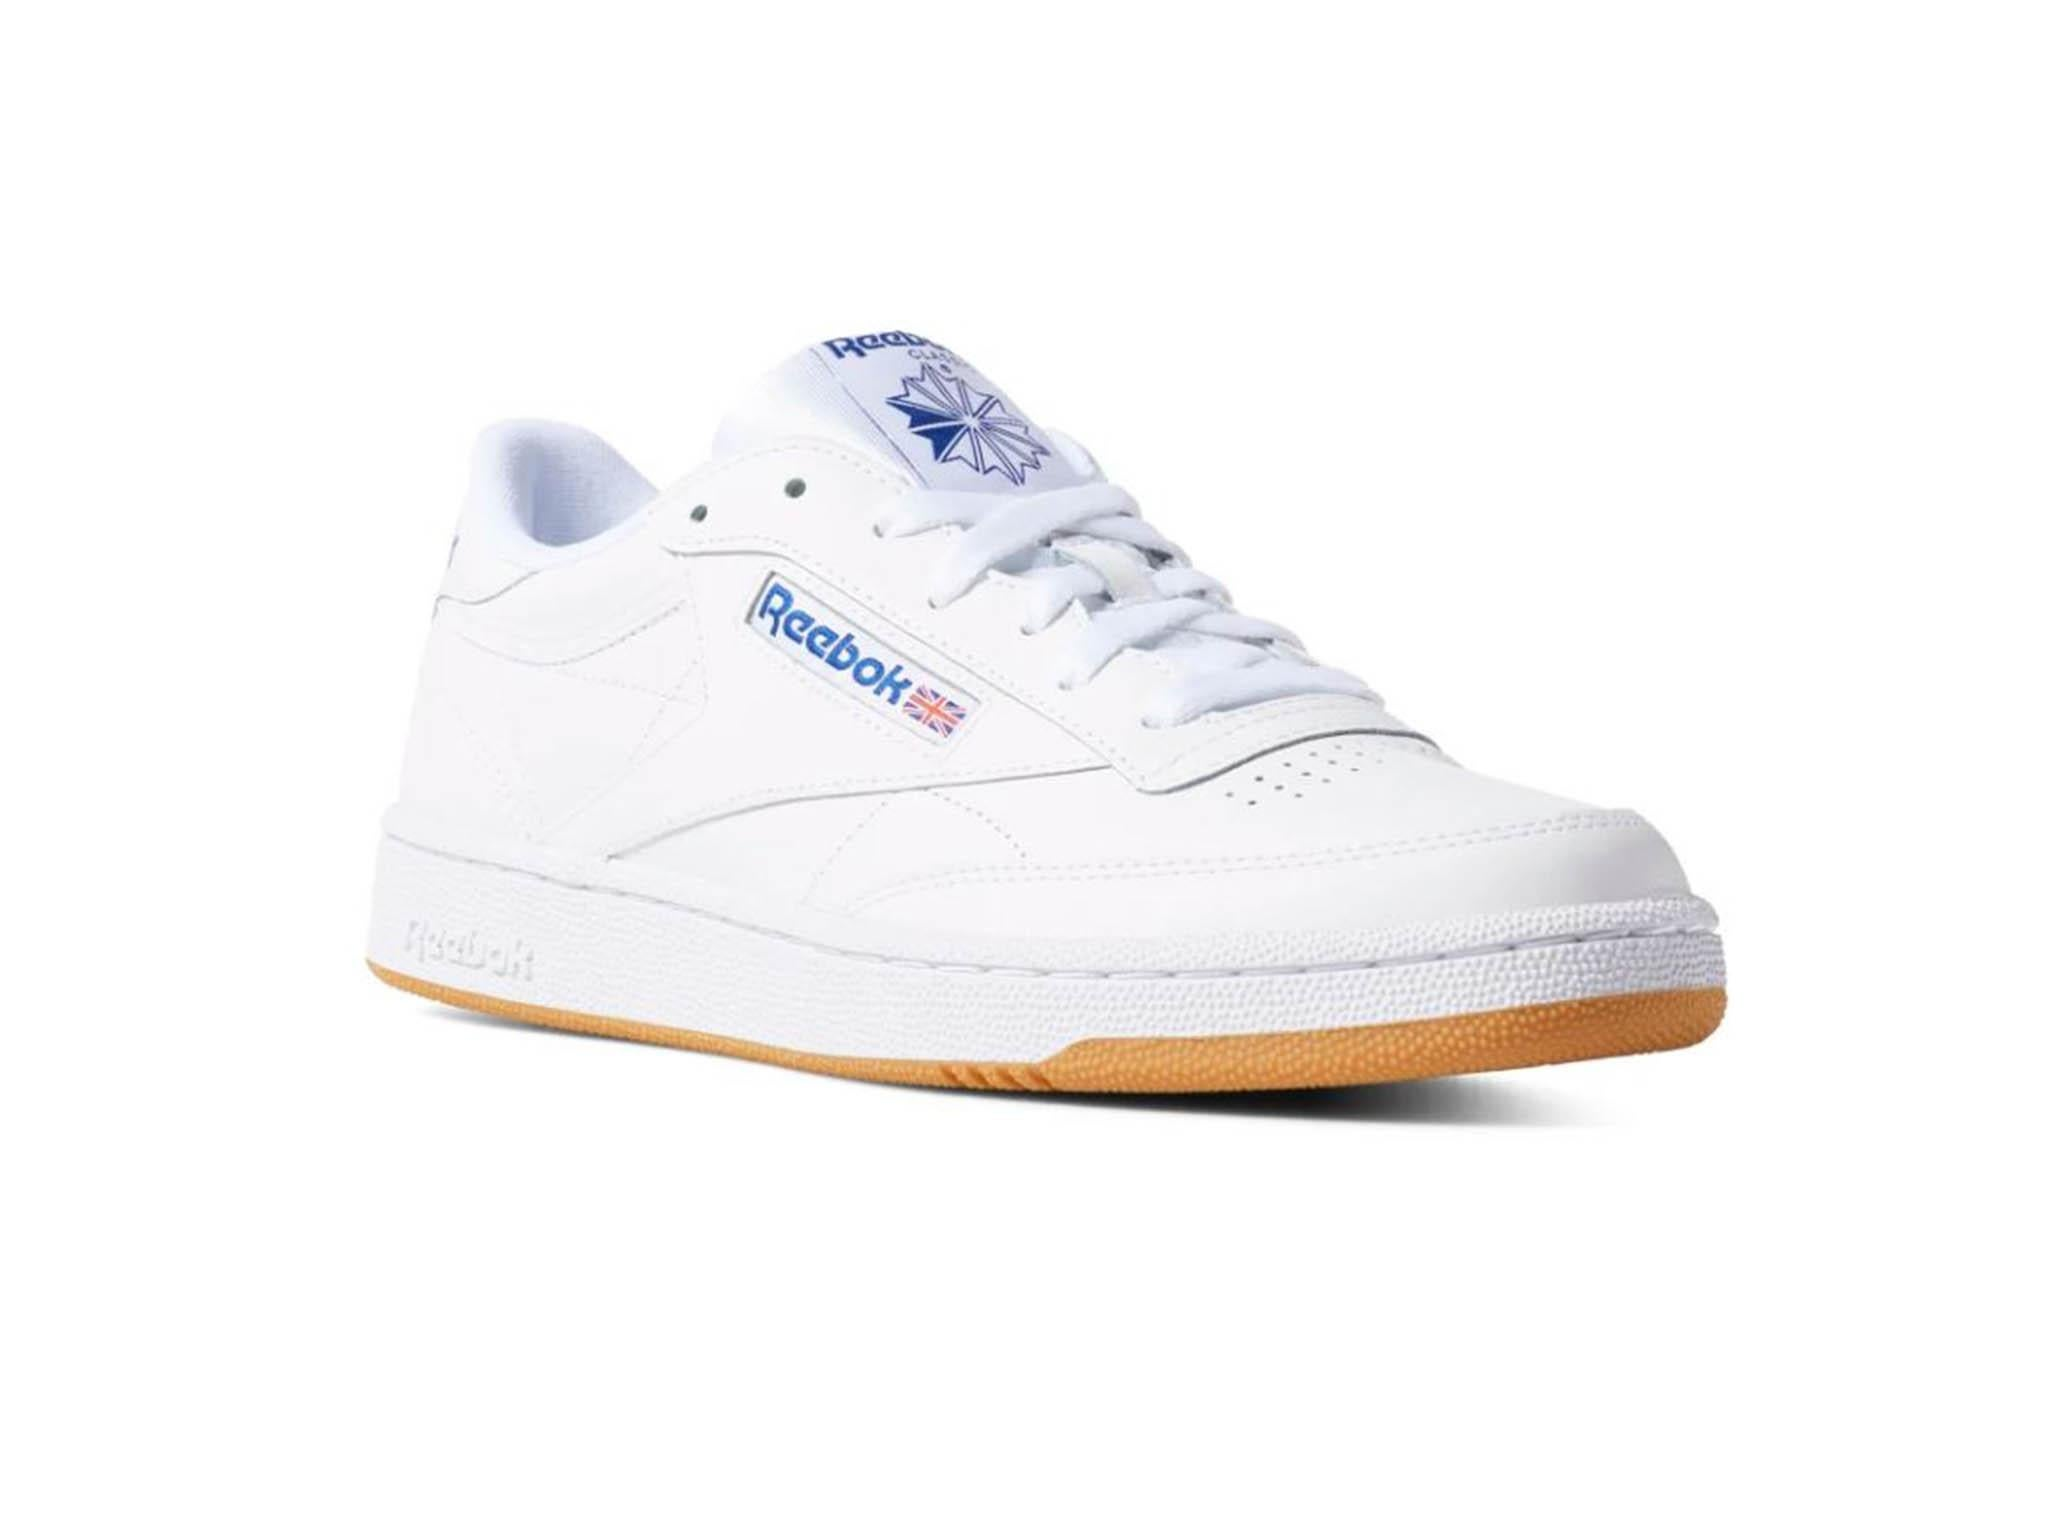 8de41b4b7392b Best women's white trainers: From Adidas Stan Smiths to Vagabond ...